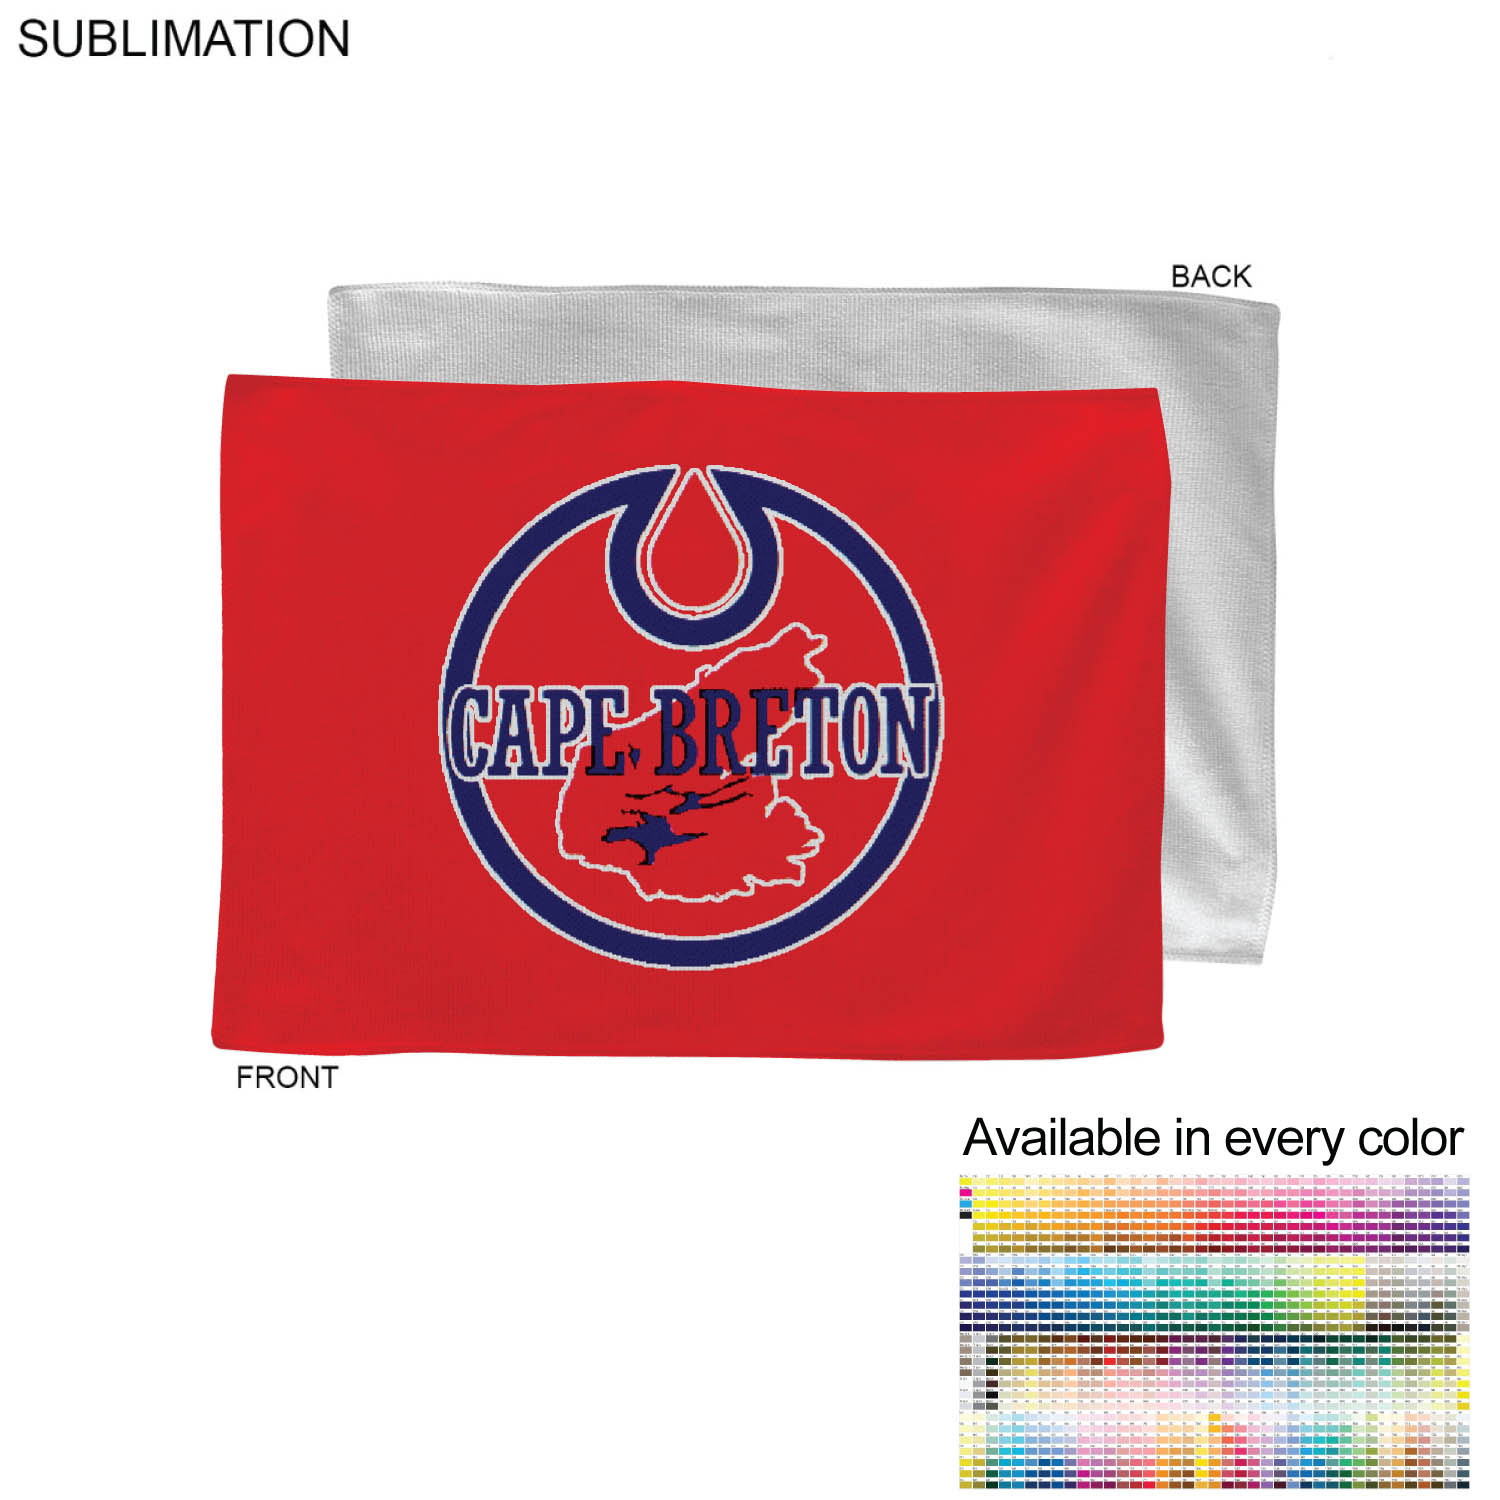 Full Bleed Sublimated Microfiber Rally Towel, 12x18 - Full Colour Imprint (#SU178-4)